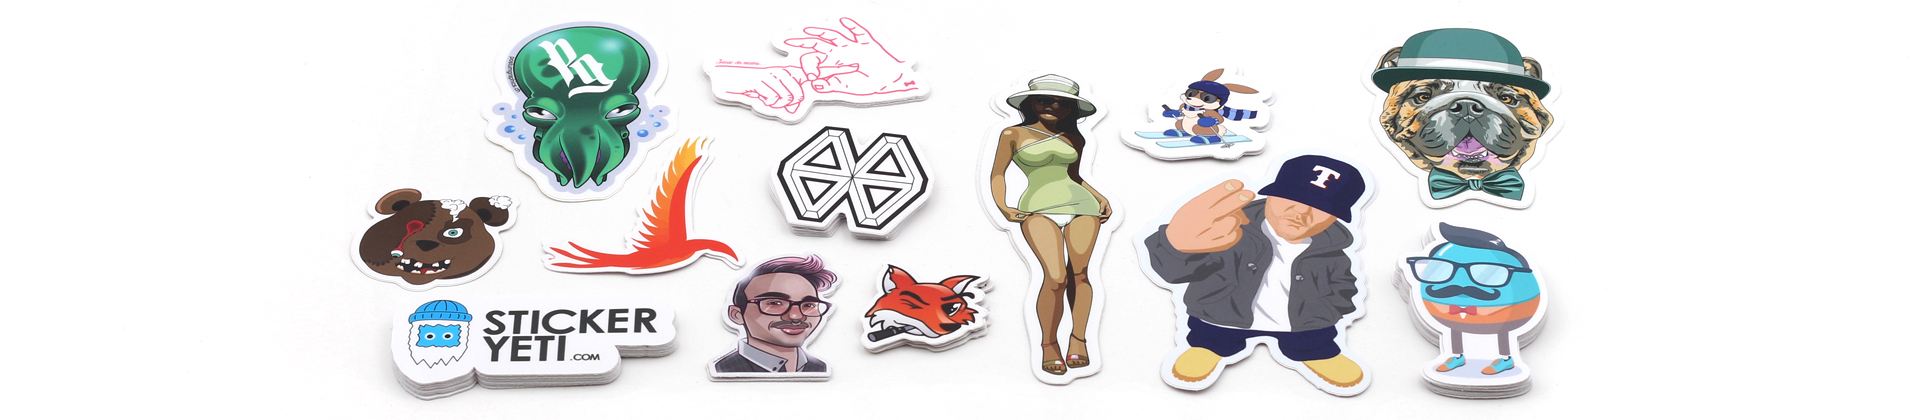 Stickers for illustrators, graphic artist, art stickers print from drawing